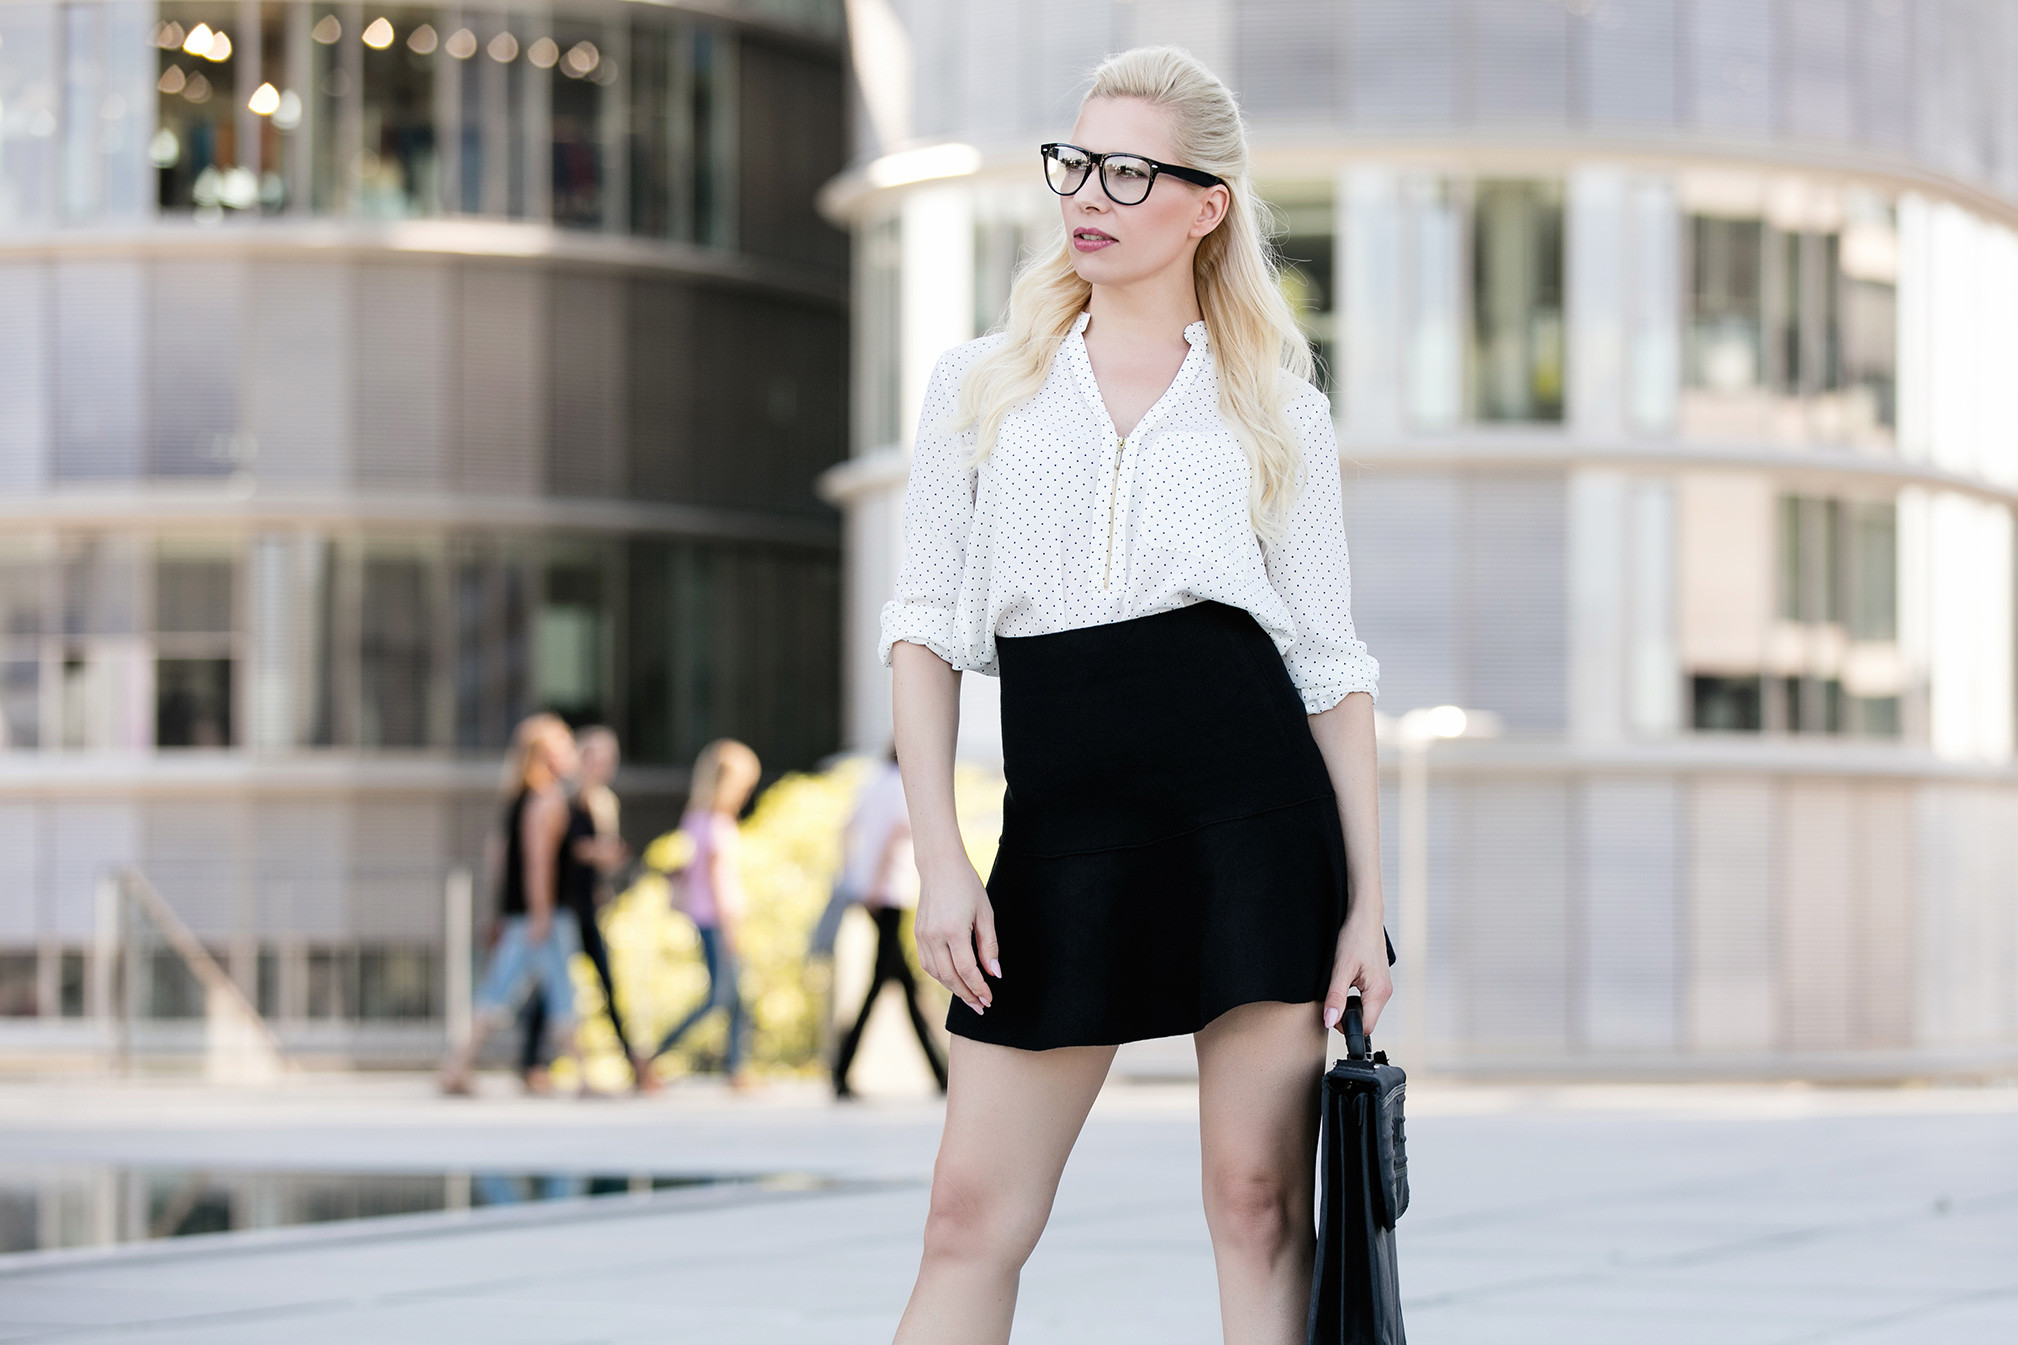 Business Style, Stockfotografie, Model mit kurzem Rock und Brille